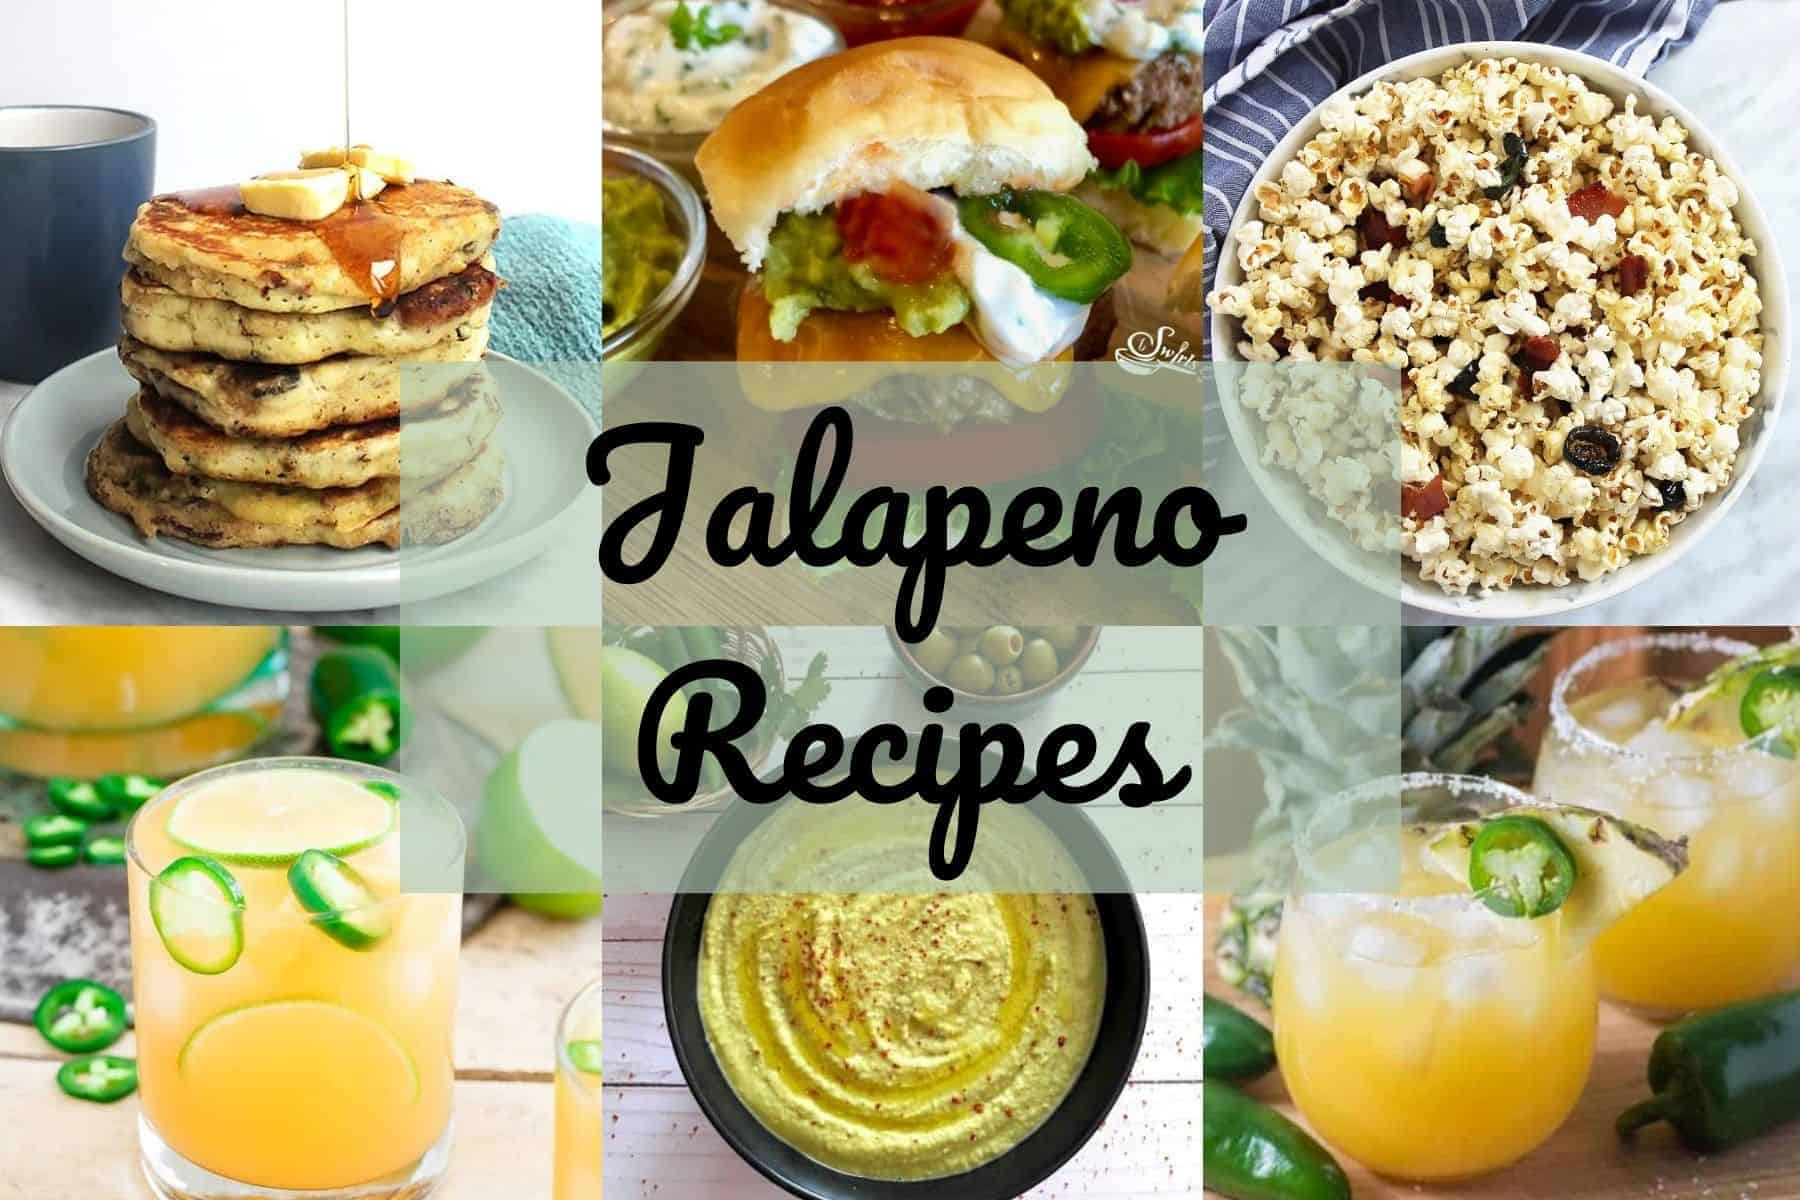 Collage of jalapeno recipes with text overlay